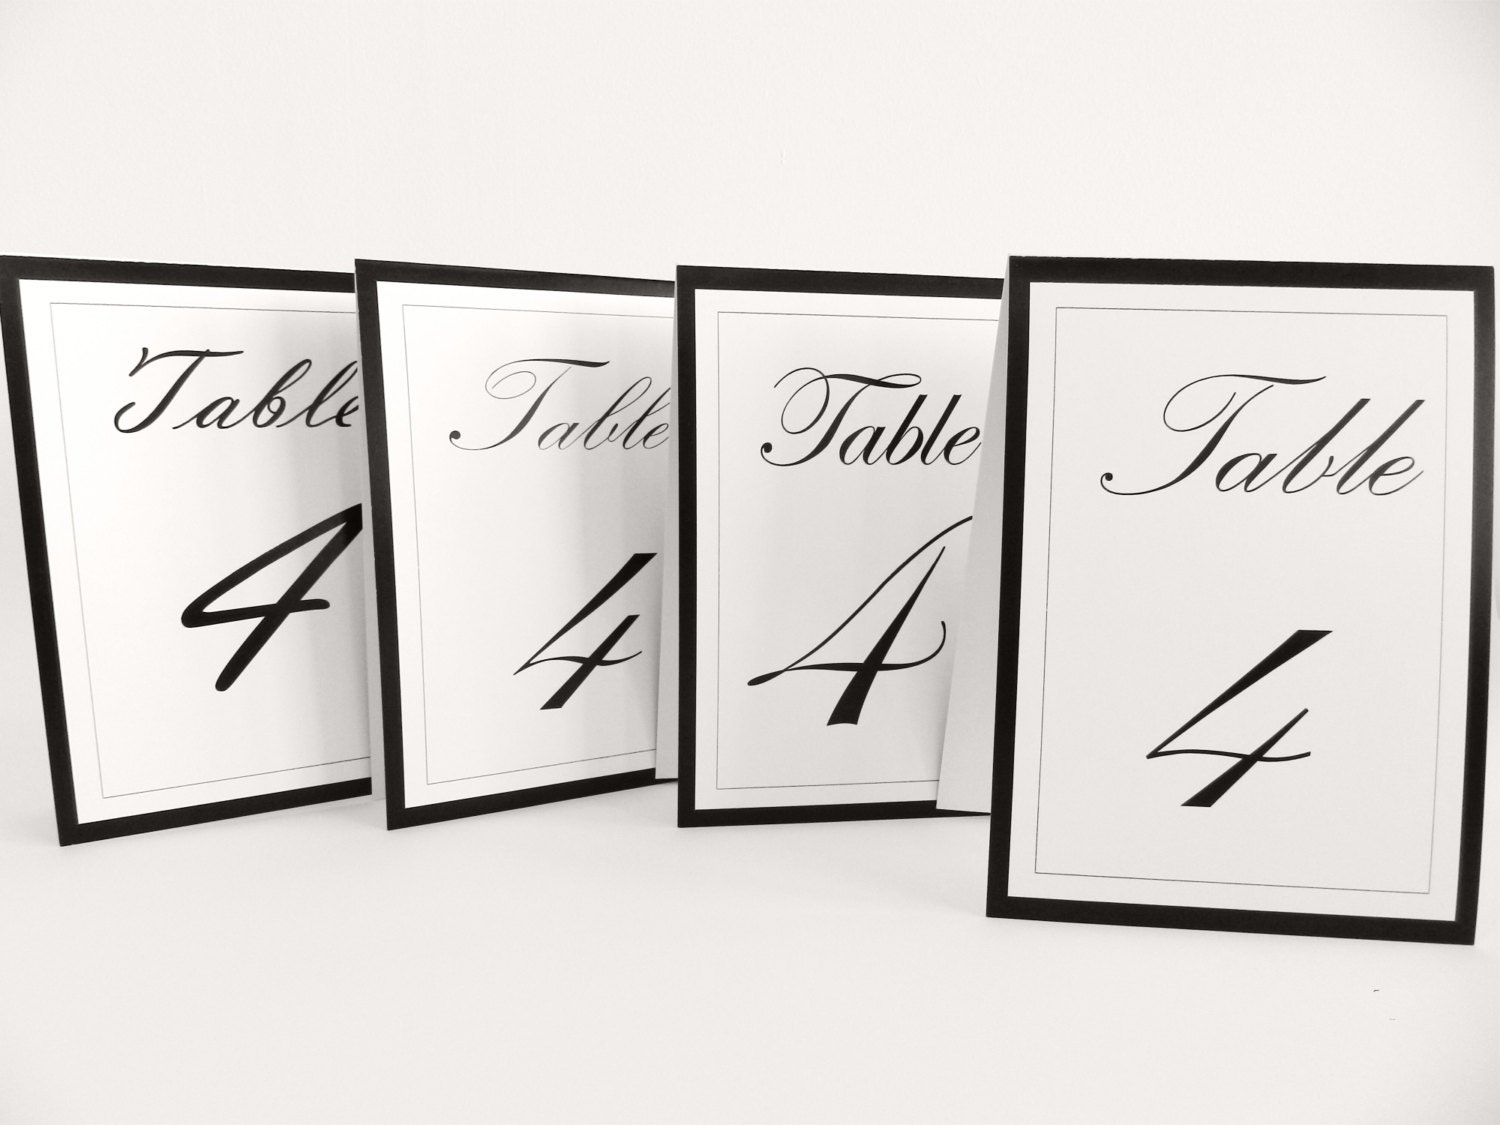 Wedding Table Numbers Tents I Classic, Edwardian black and white I 4 types of calligraphy - FunkyBoxStudio